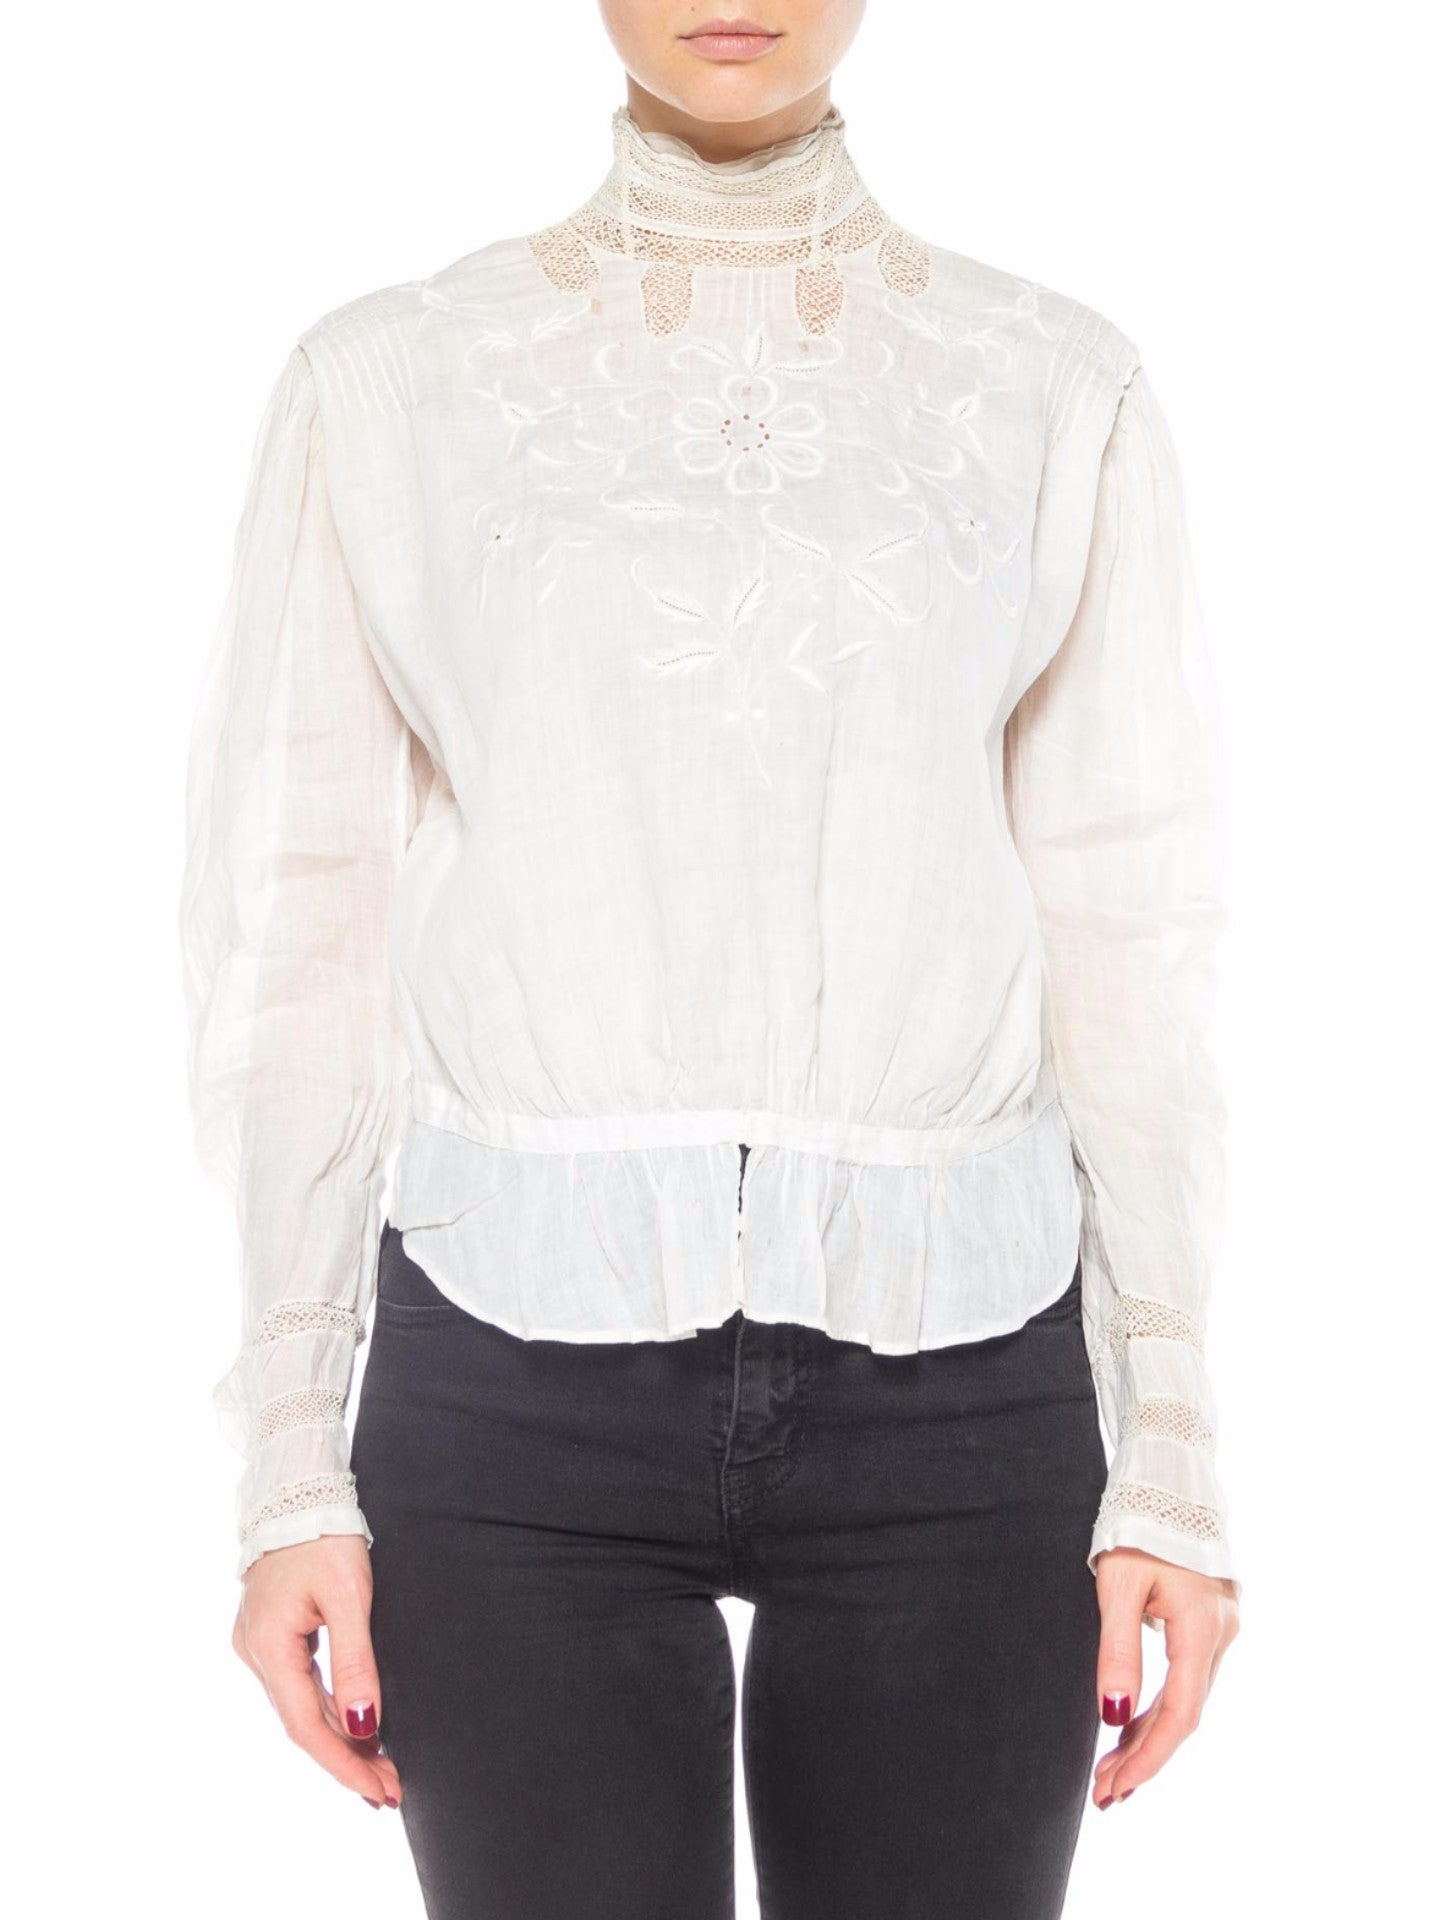 Victorian White Lace Top with Floral Embroidery and High Neck